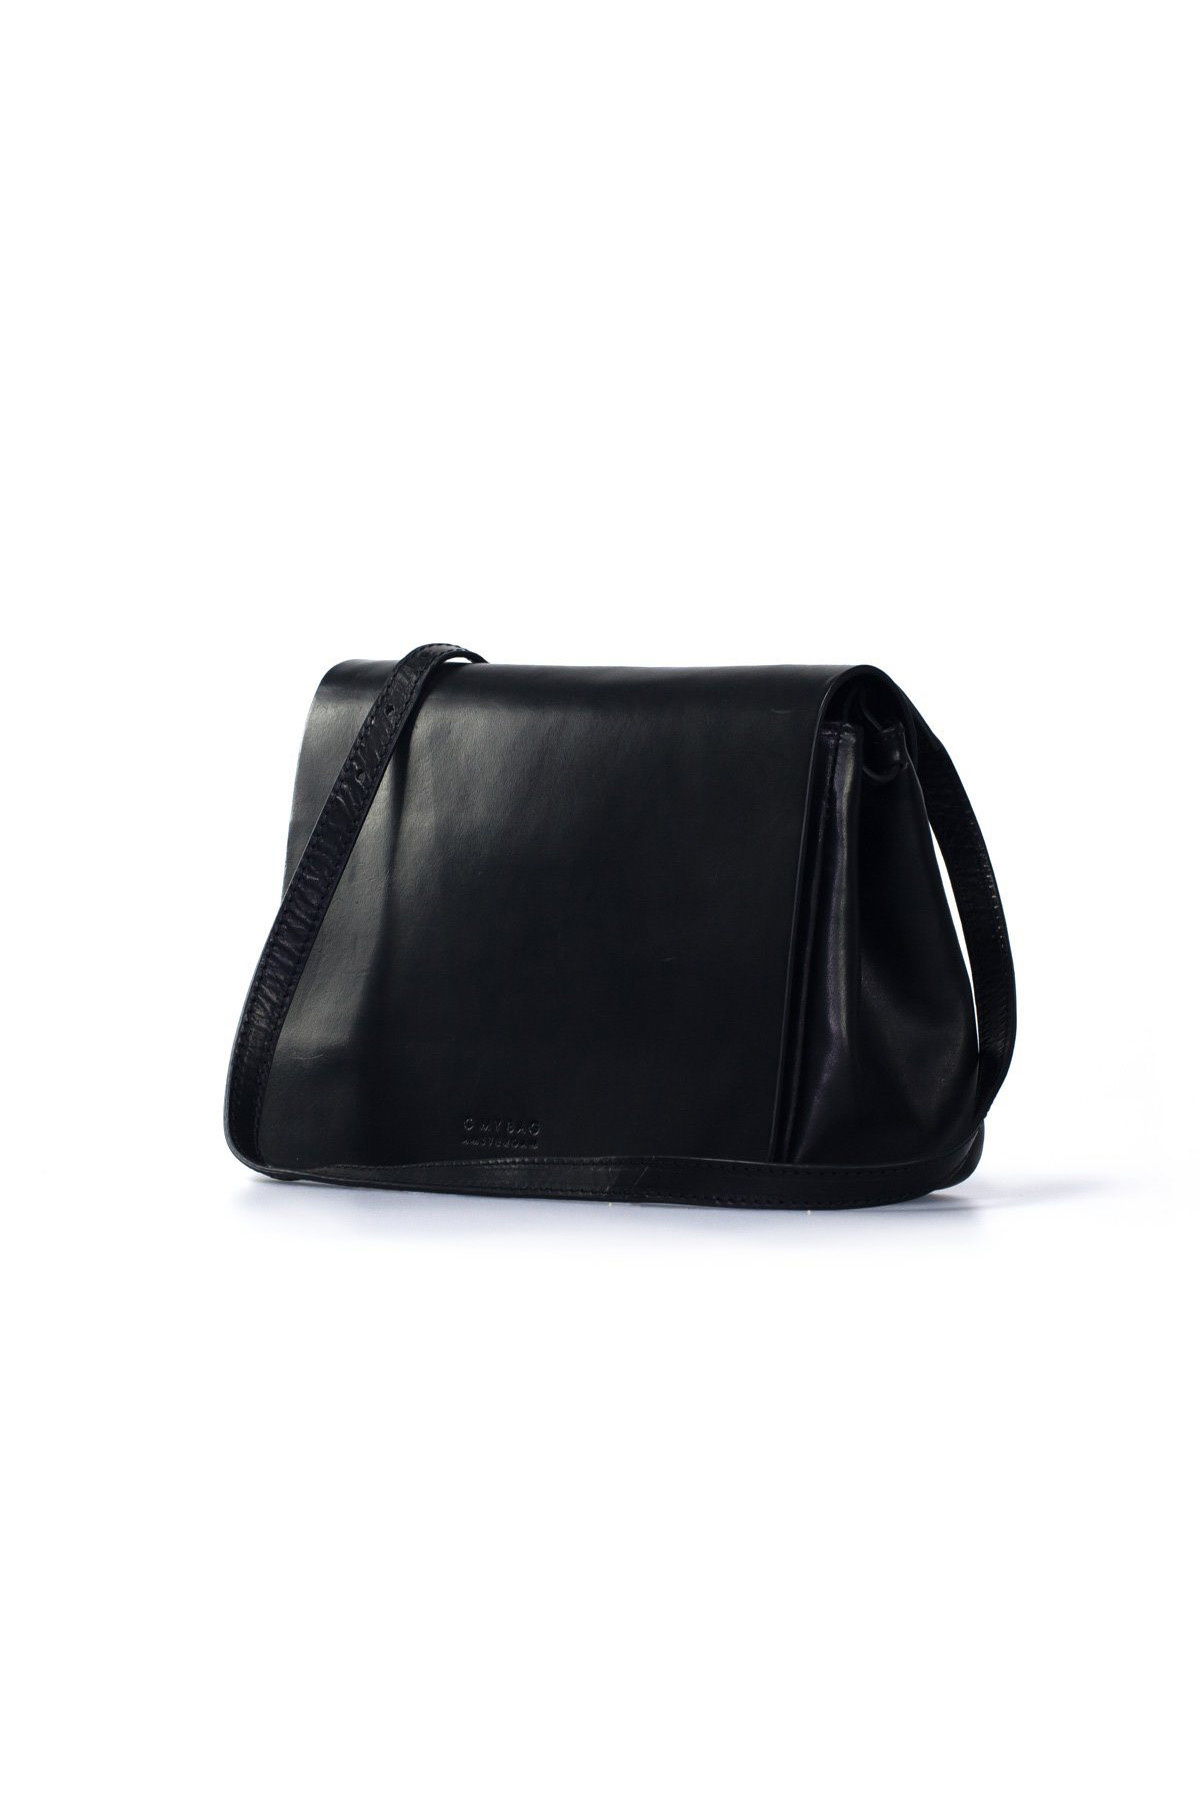 The Lucy Bag - Eco Black Classic Leather-2